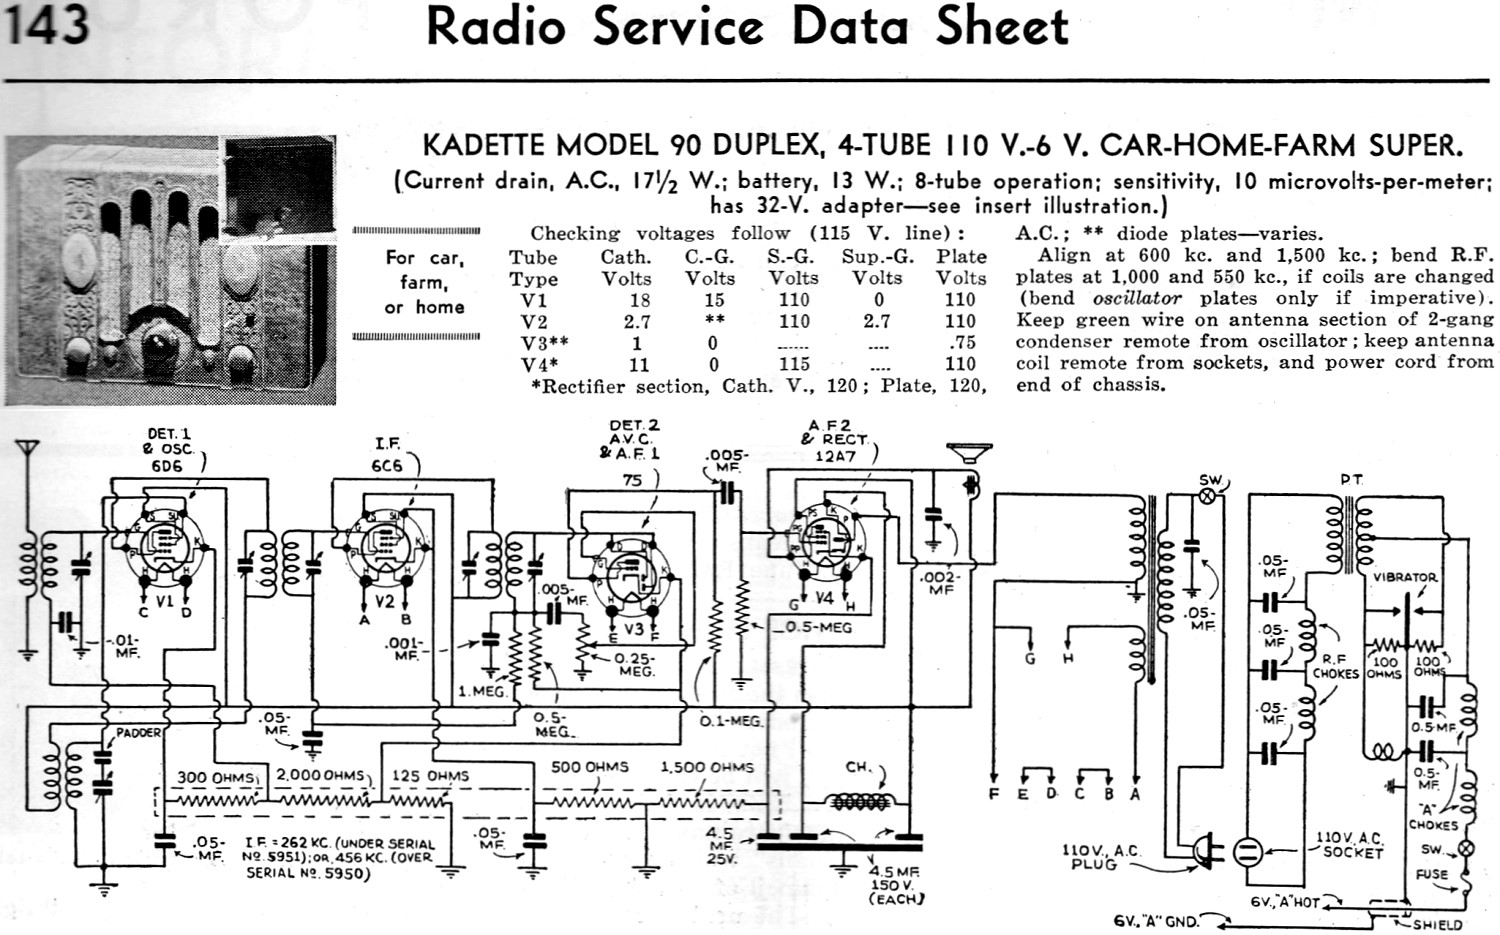 kadette model 90 duplex 4 110 v 6 v car home farm radio service data sheet